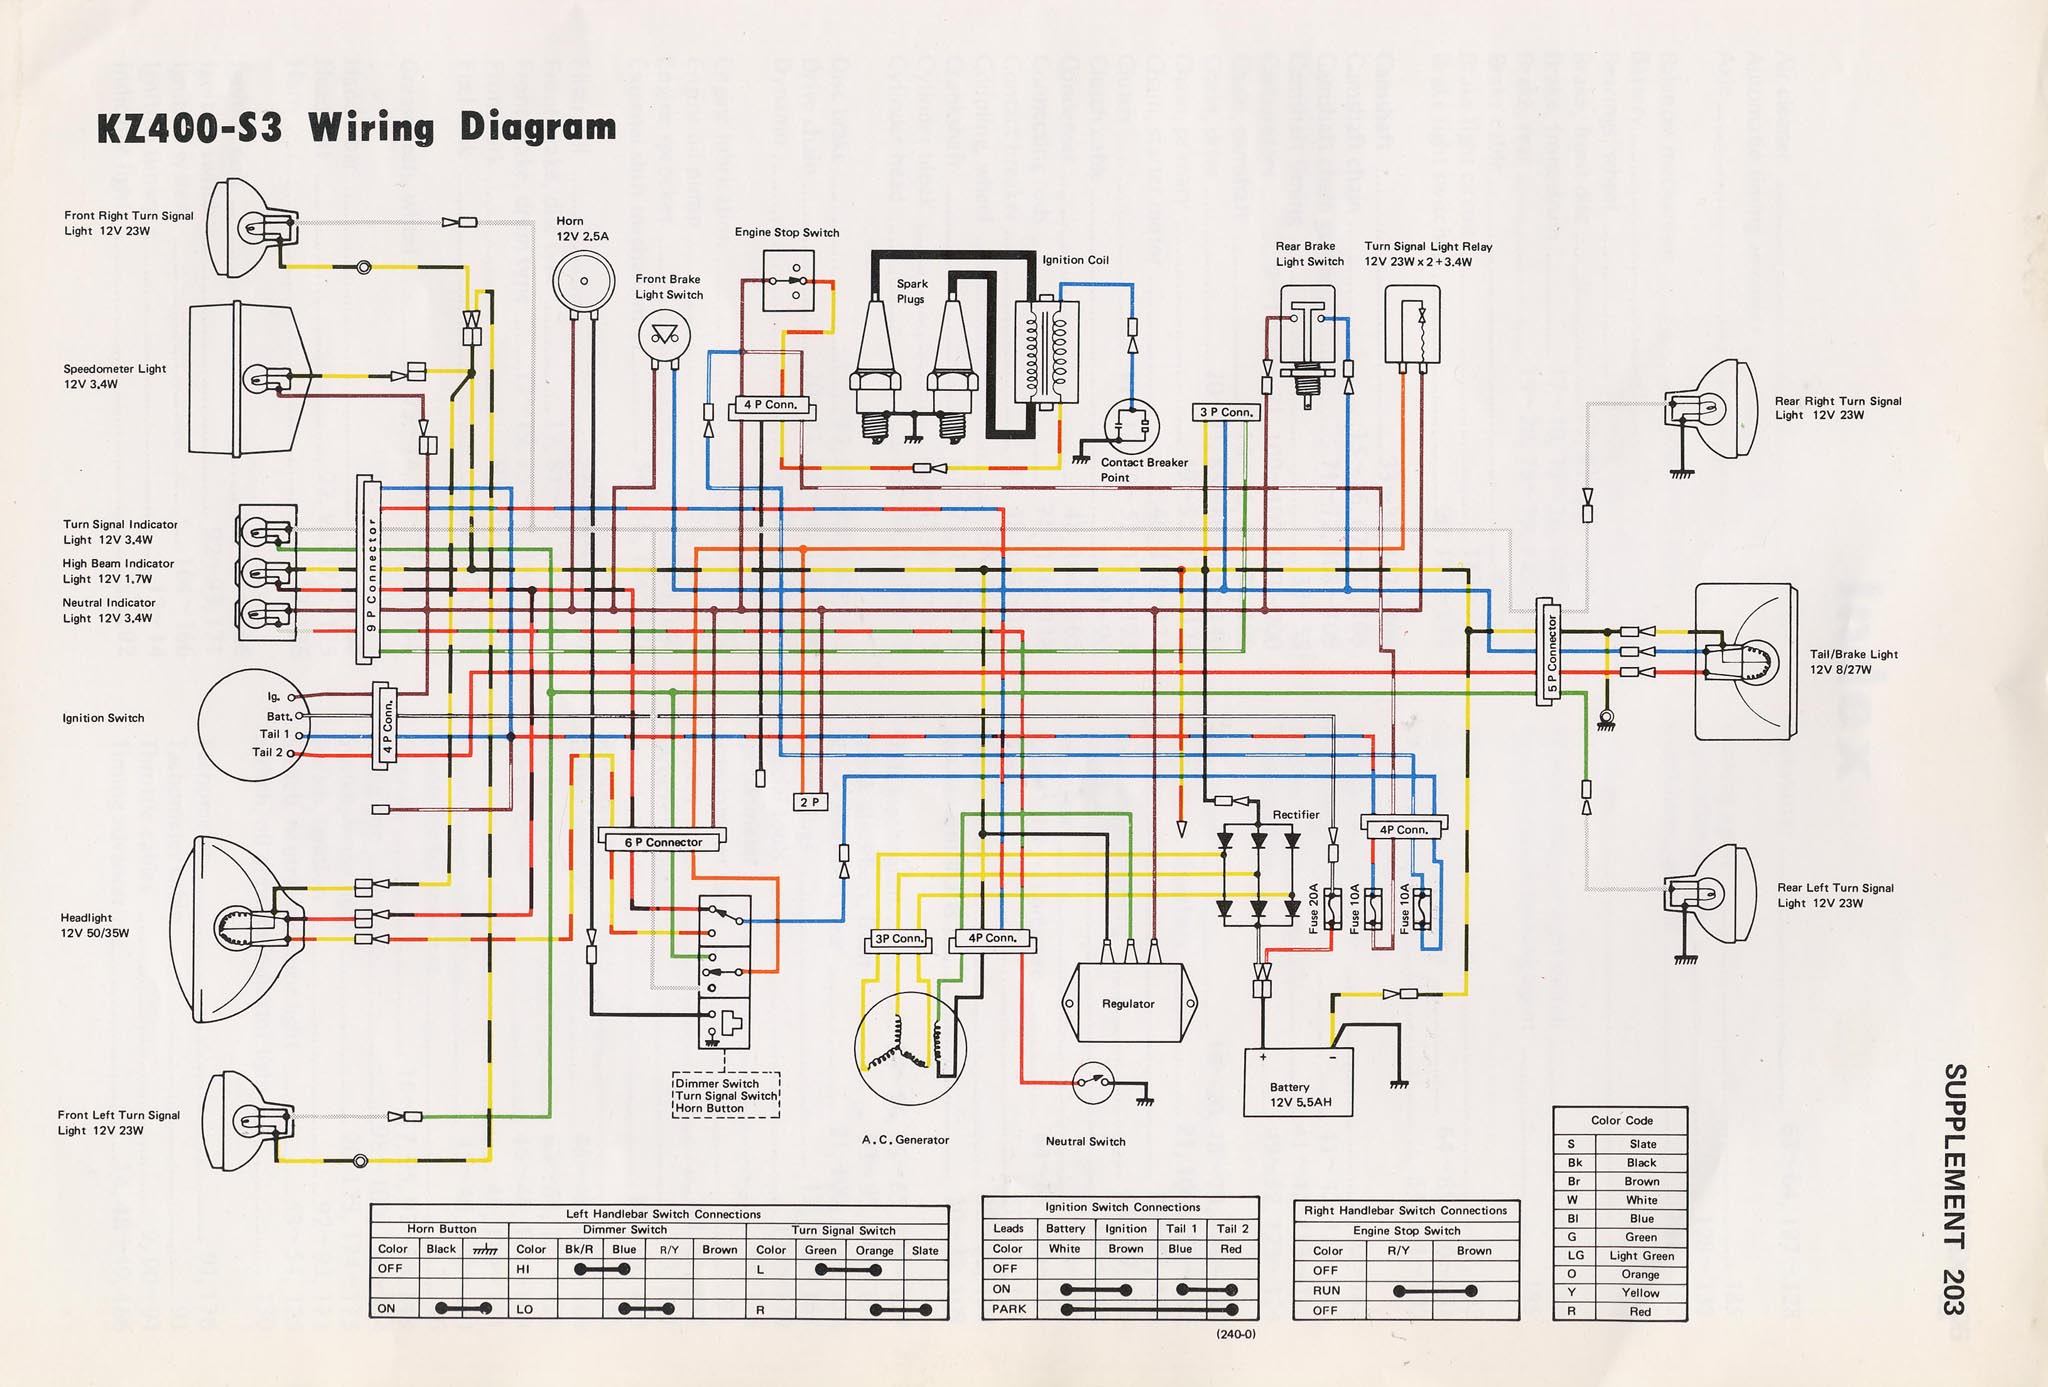 1981 Kz650 Wiring Diagram Schematic Diagrams 1977 Kawasaki Electrical 78 Specs